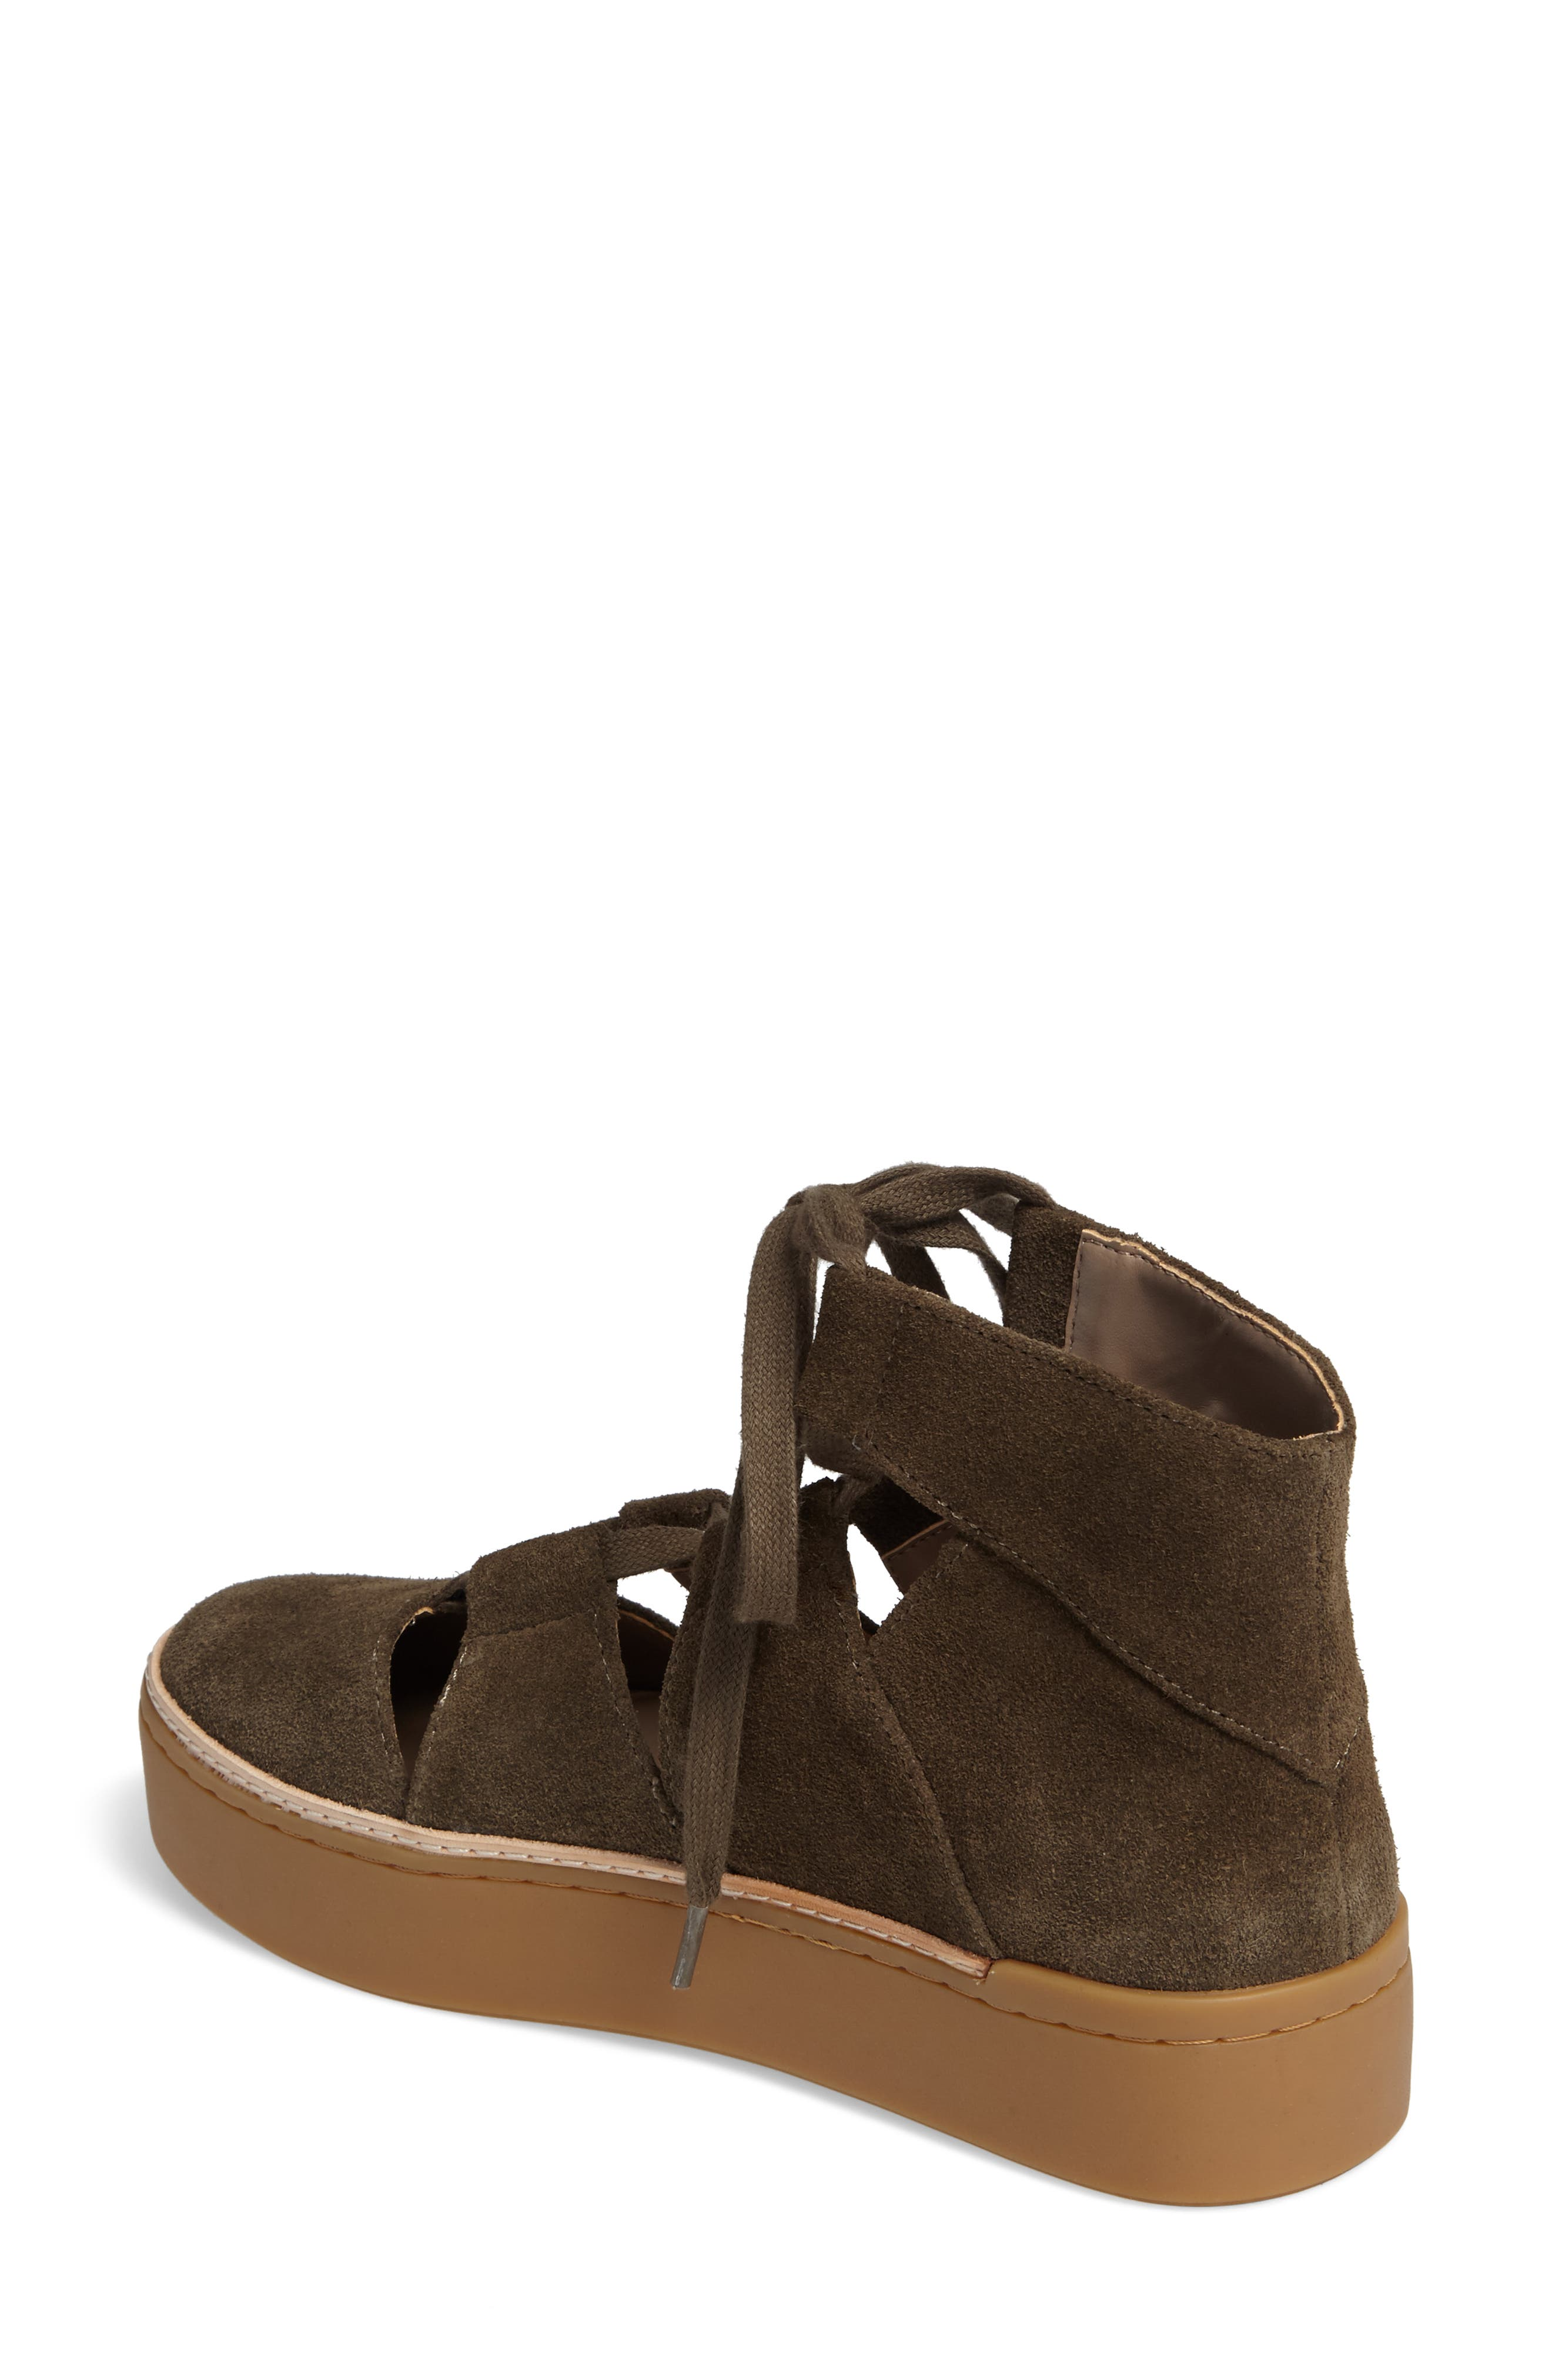 M4D3 Savanah Ghillie Platform Sneaker,                             Alternate thumbnail 2, color,                             DEEP TAUPE LEATHER